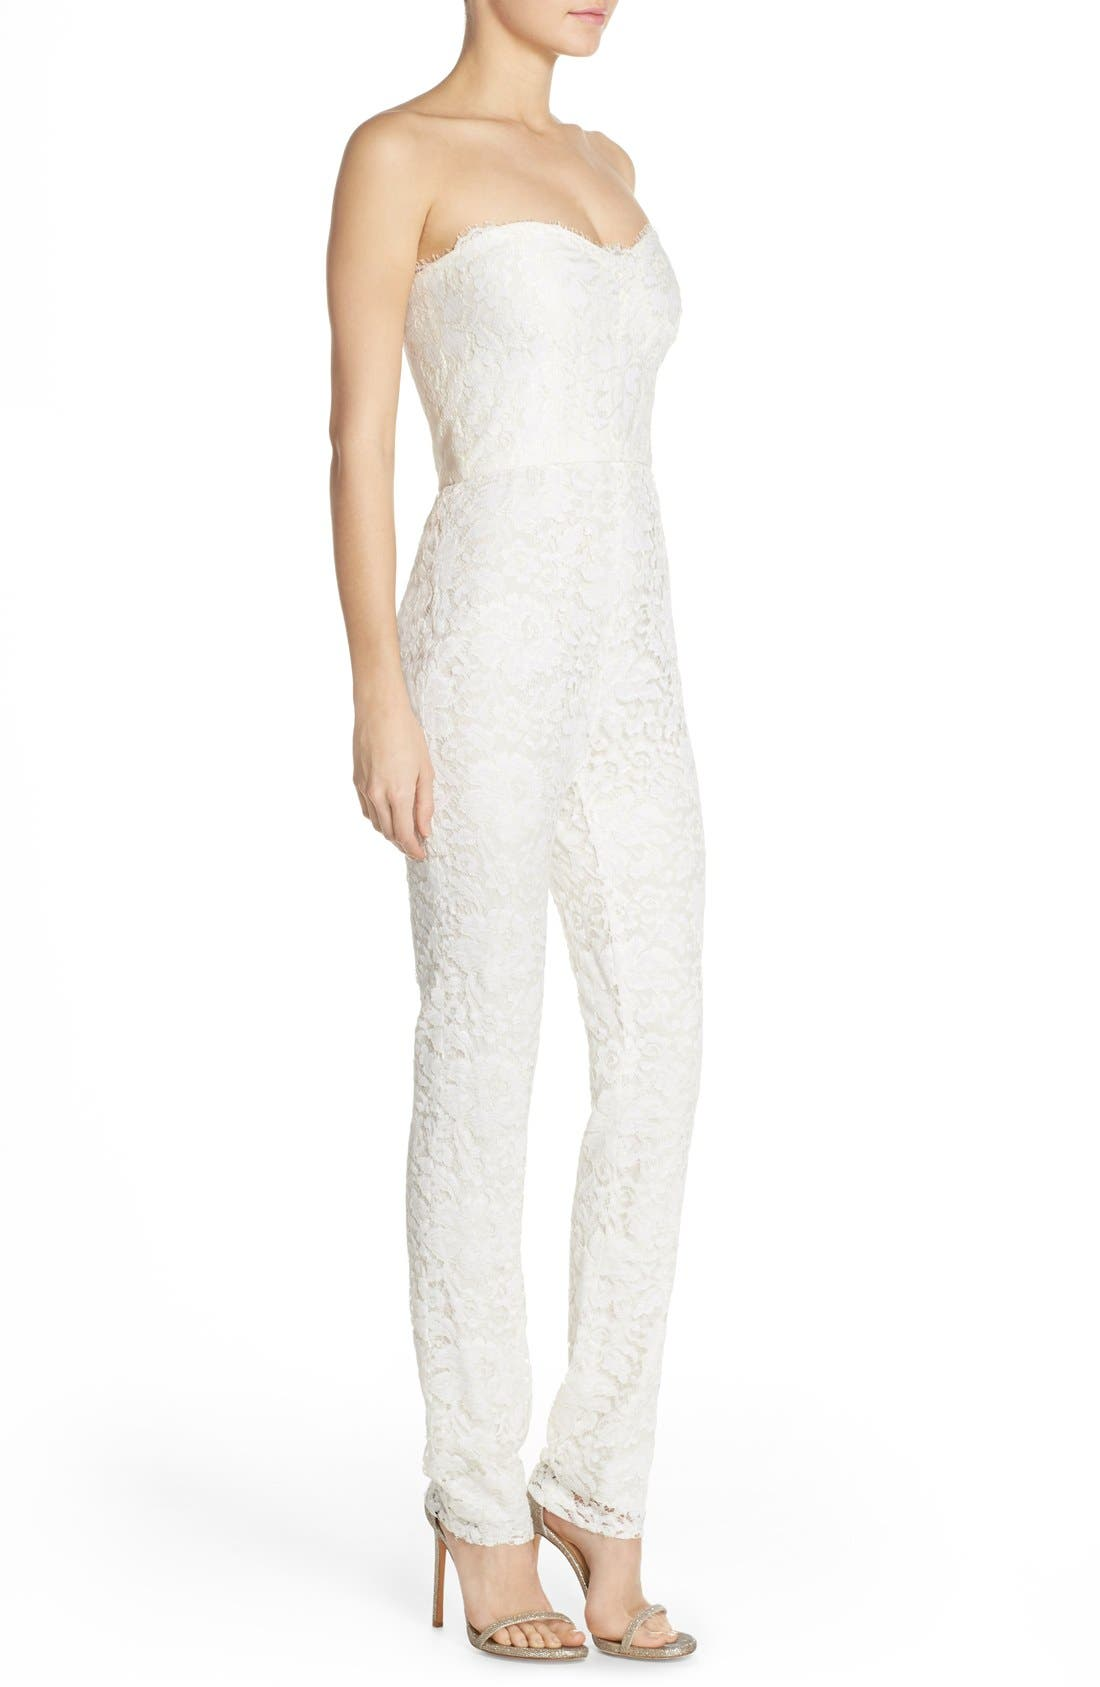 Monique Lhuillier Ready to Wed Strapless Chantilly Lace Jumpsuit,                             Alternate thumbnail 5, color,                             100